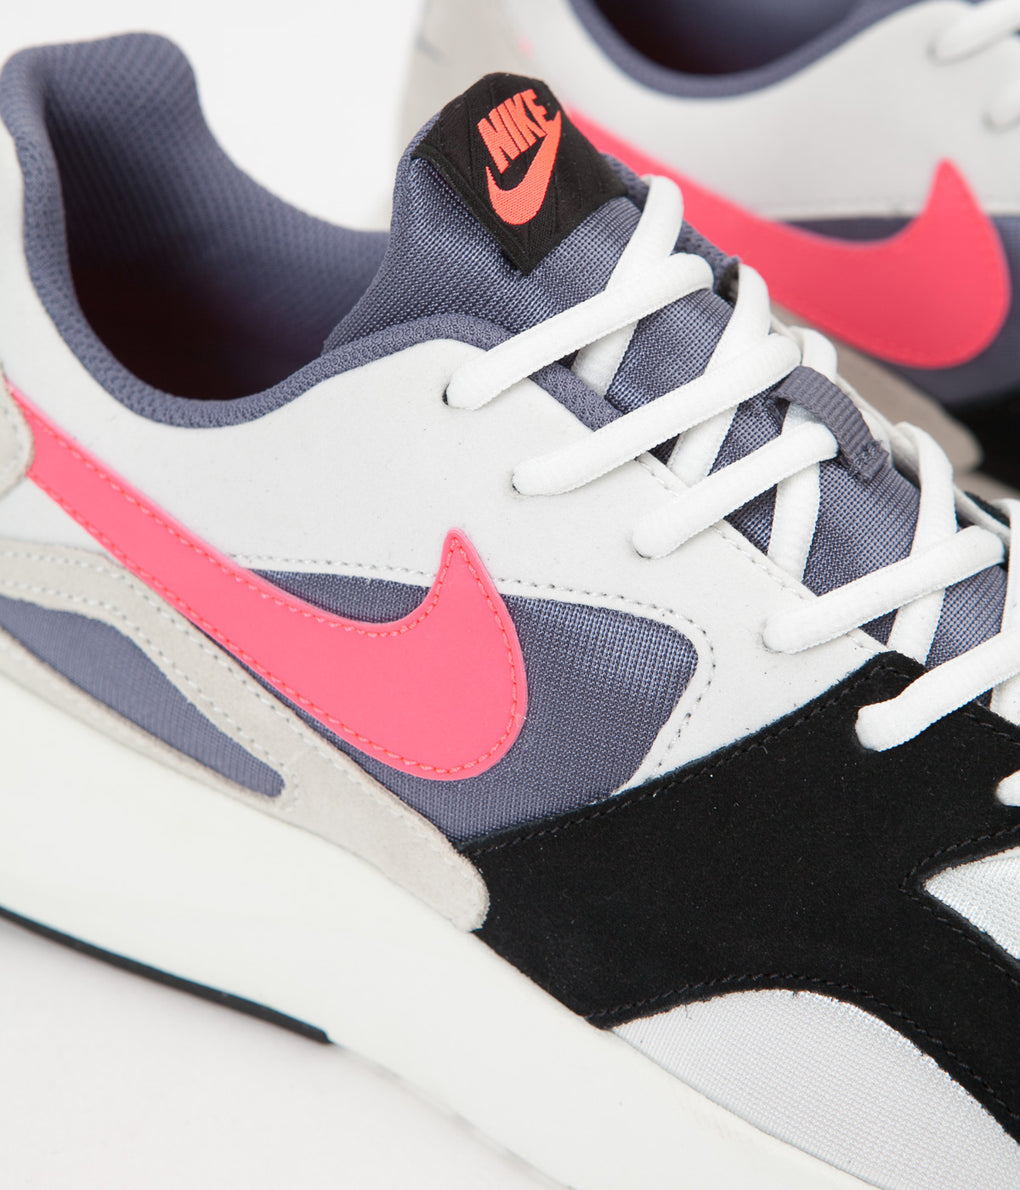 Nike Pantheos Shoes - Summit White / Hot Punch - Black